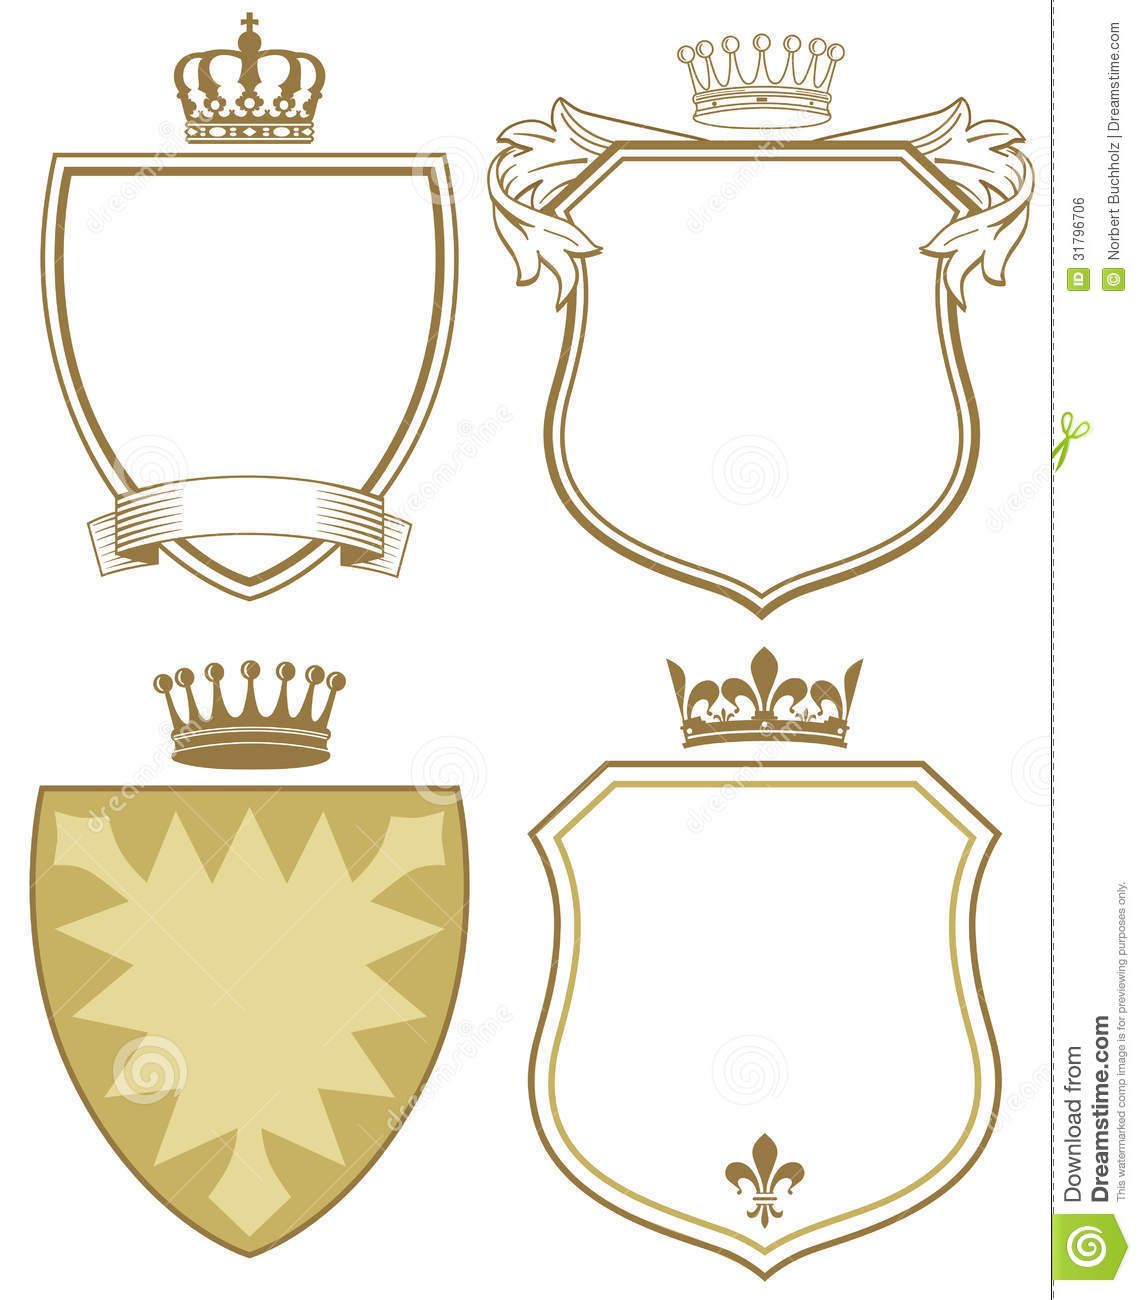 Coat Of Arms Or Shields  Tatuajes    Free Stock Image